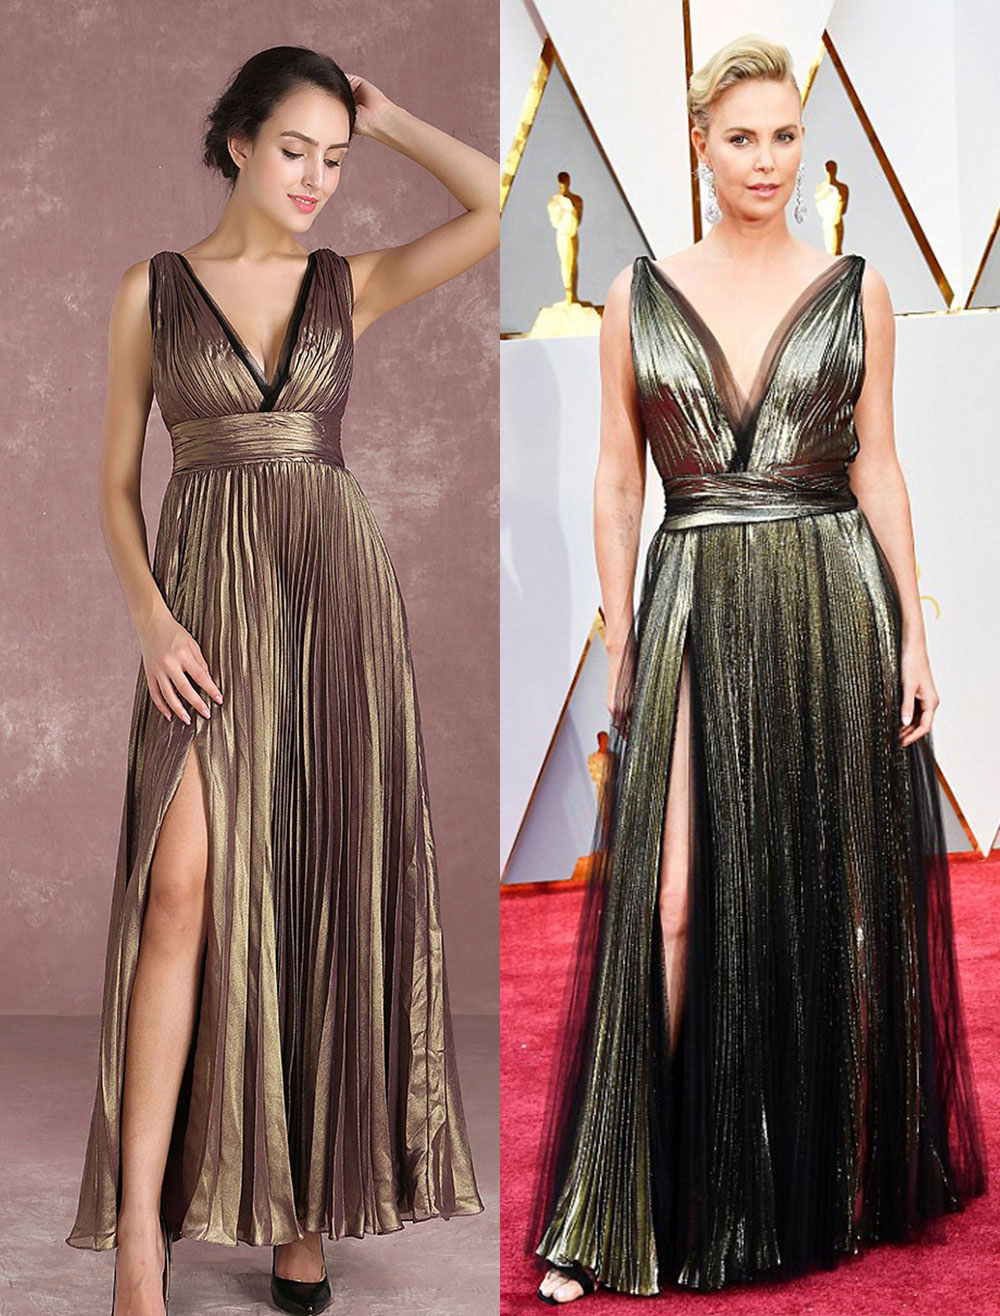 Chiffon Celebrity Dress Light Gold V Neck Pleated Floor Length Evening Dress Inspired By Charlize Theron At Oscar Milanoo